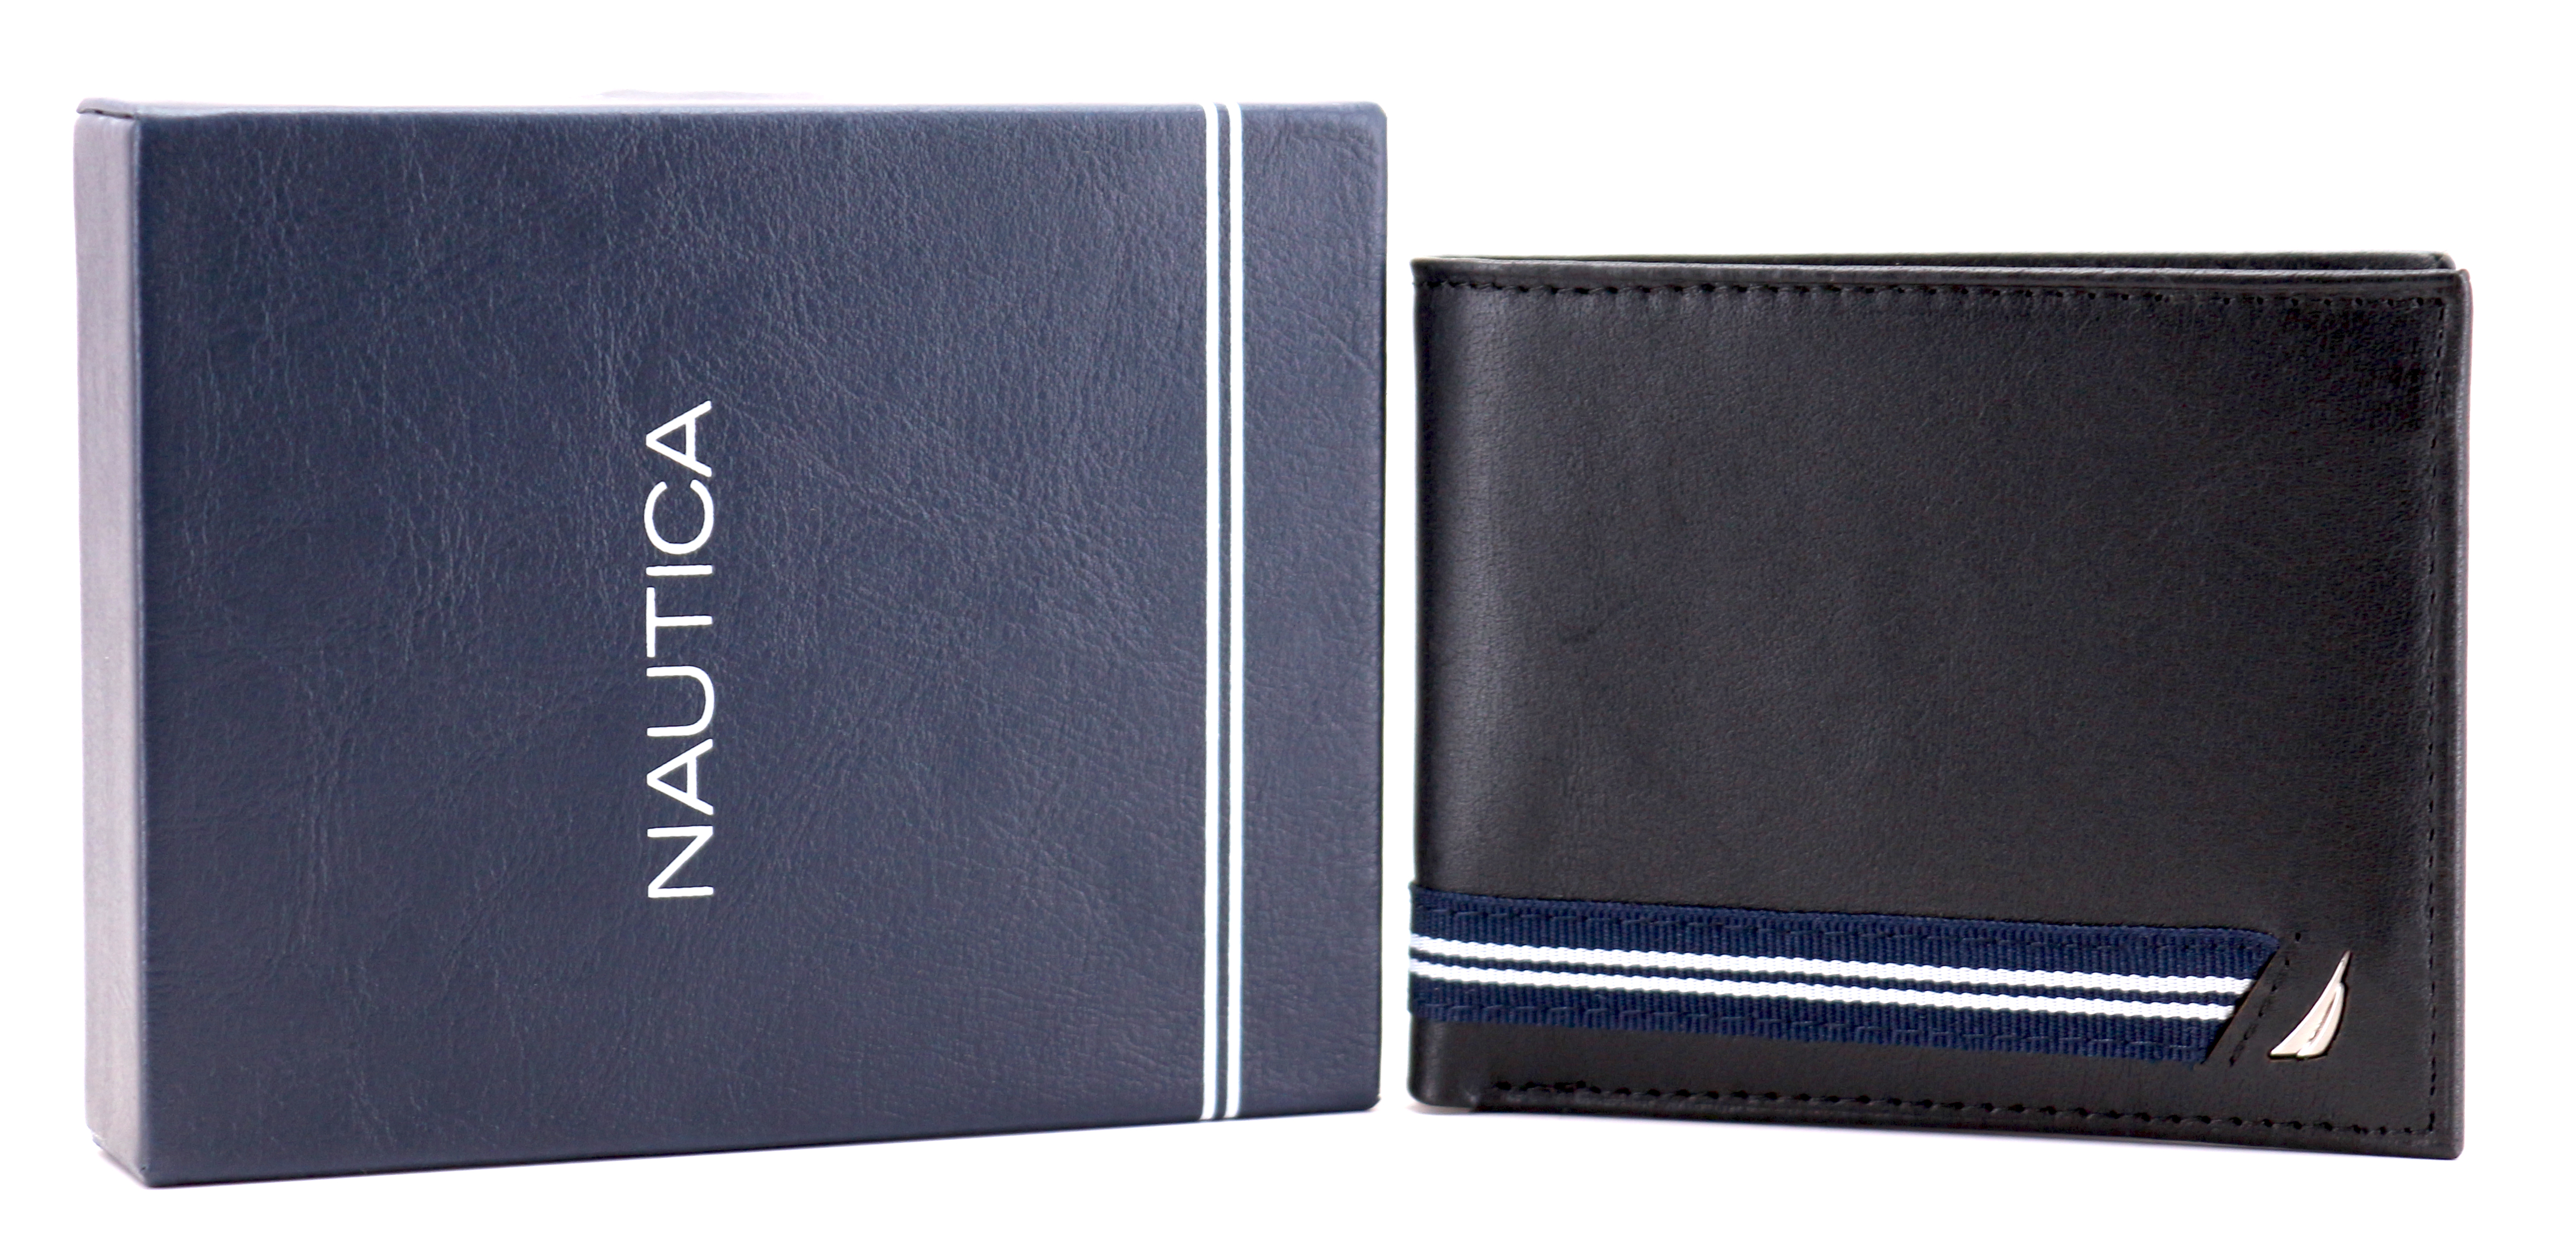 Nautica-Men-039-s-Genuine-Leather-Credit-Card-ID-Double-Billfold-Passcase-Wallet thumbnail 10